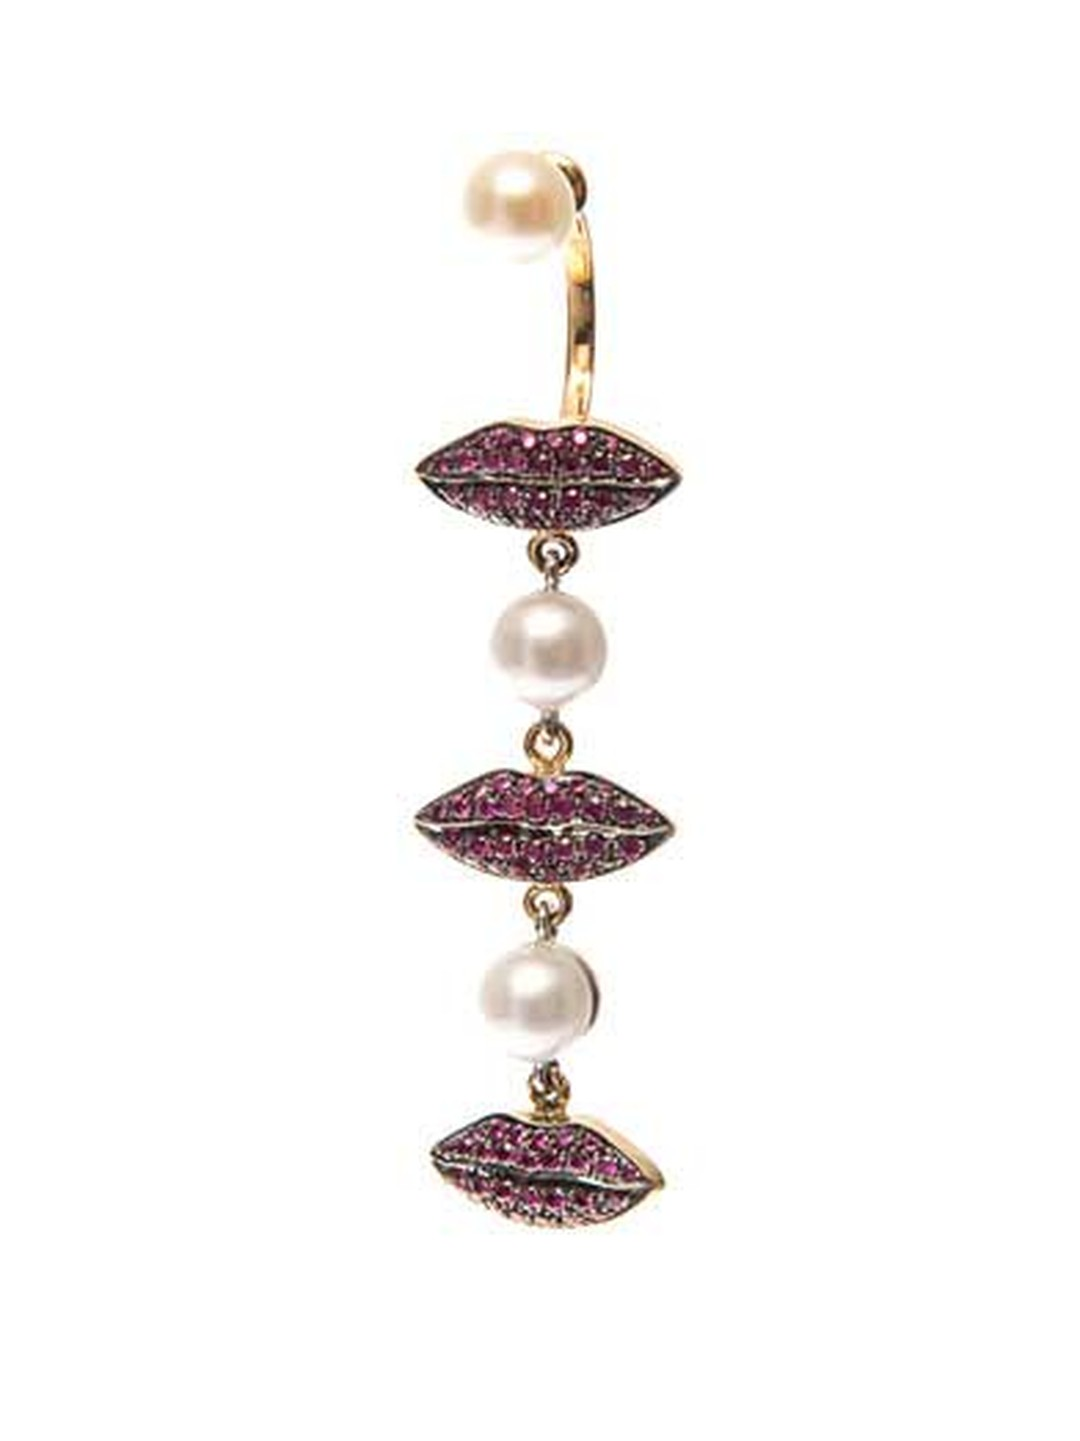 Delfina Delettrez pearl earring in gold with ruby lips (£3,665).